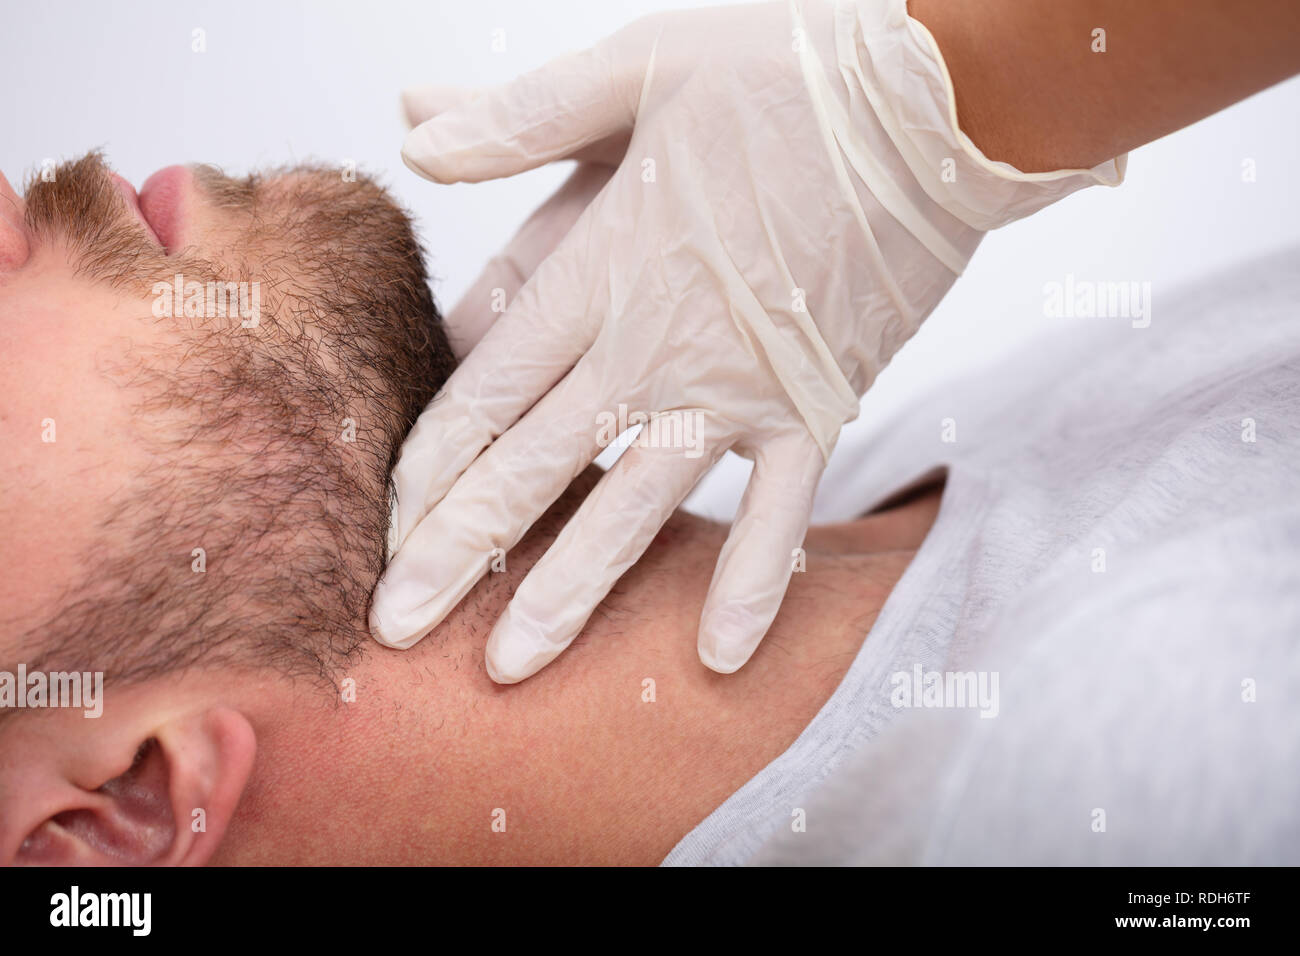 Doctor's Hand Wearing Gloves Performing Physical Exam Palpation Of The Thyroid Gland - Stock Image